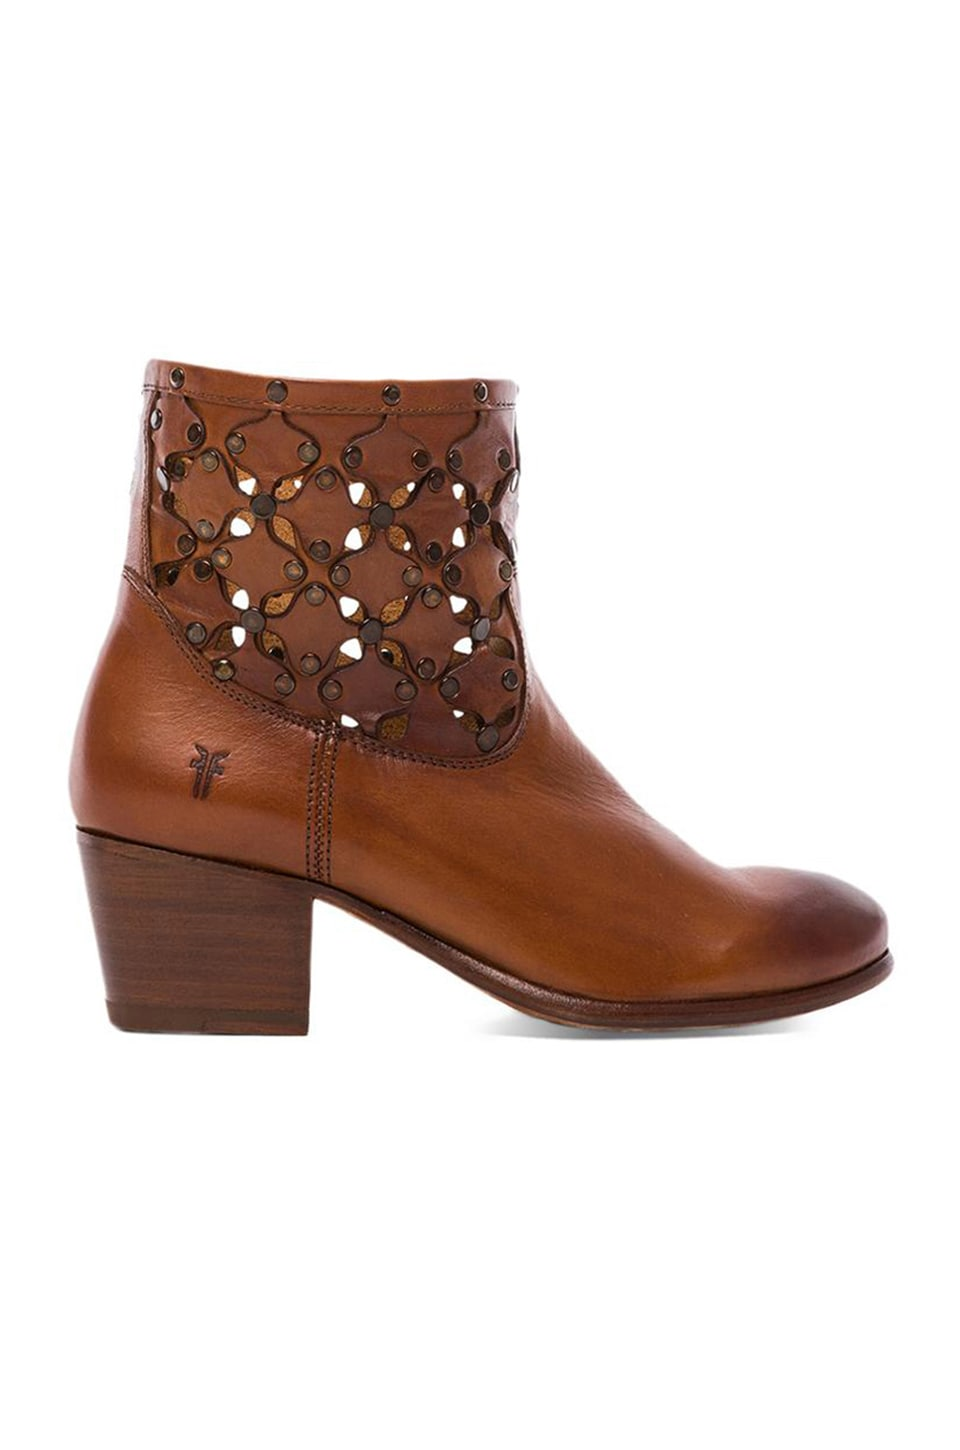 Frye Courtney Stud Overlay Bootie in Whiskey